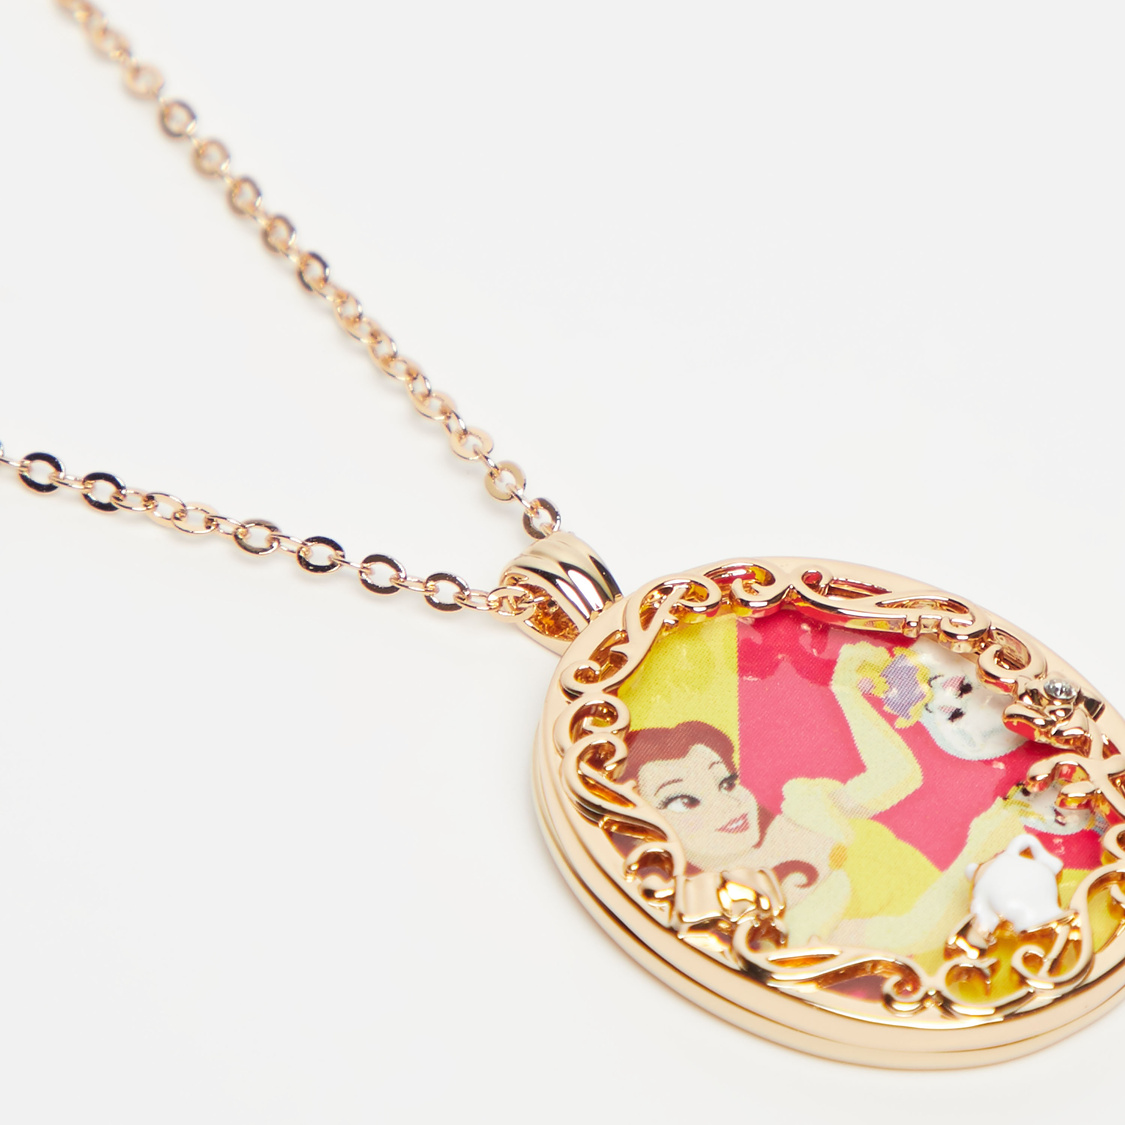 Princess Pendant Necklace with Lobster Clasp